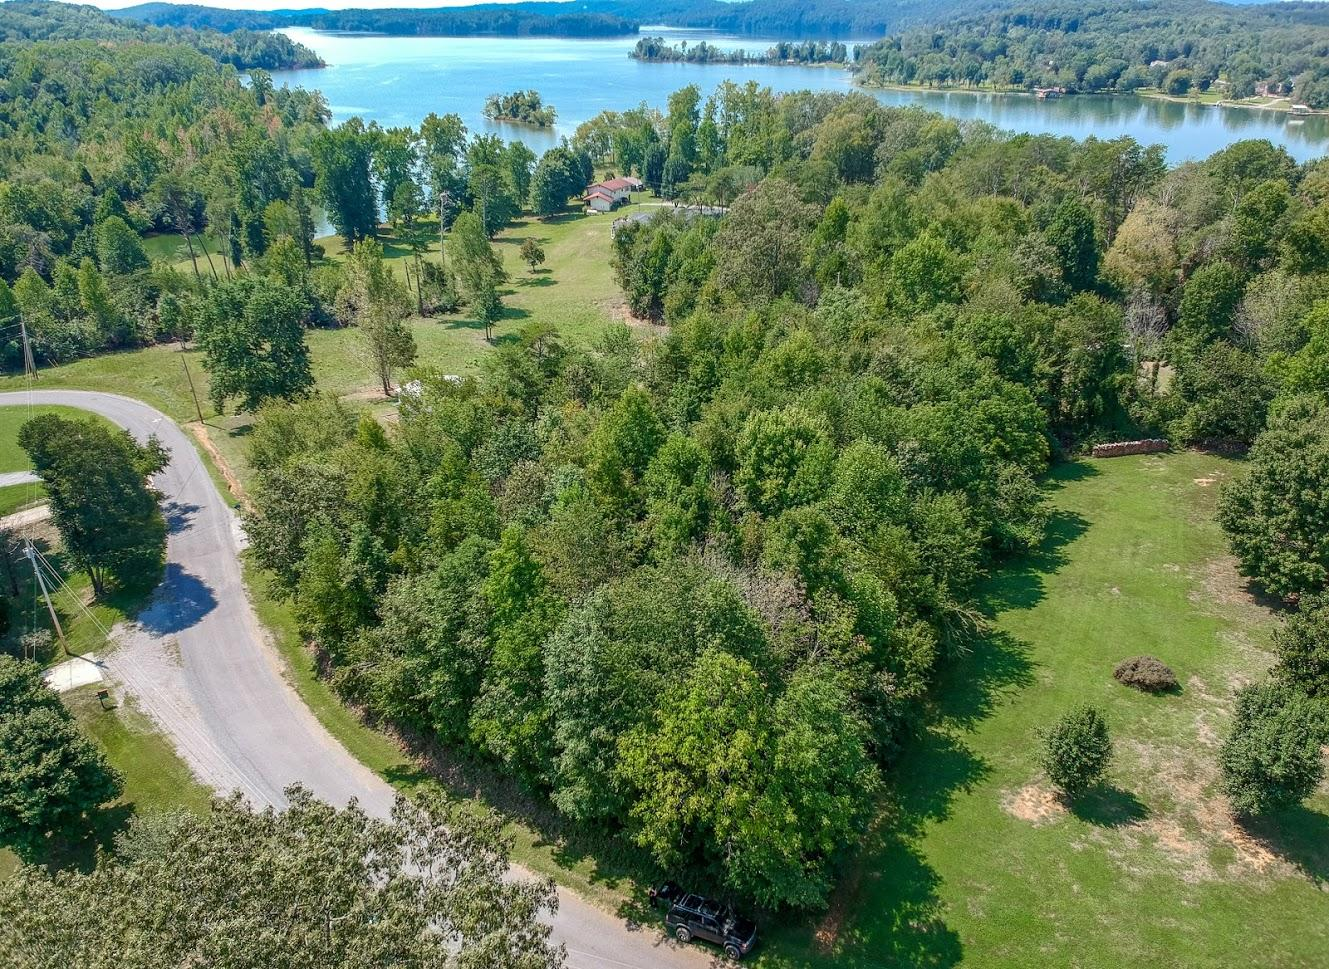 Lot 75 Debbie Dr, Spring City, Tennessee 37381, ,Lots And Land,For Sale,Lot 75 Debbie Dr,1324056